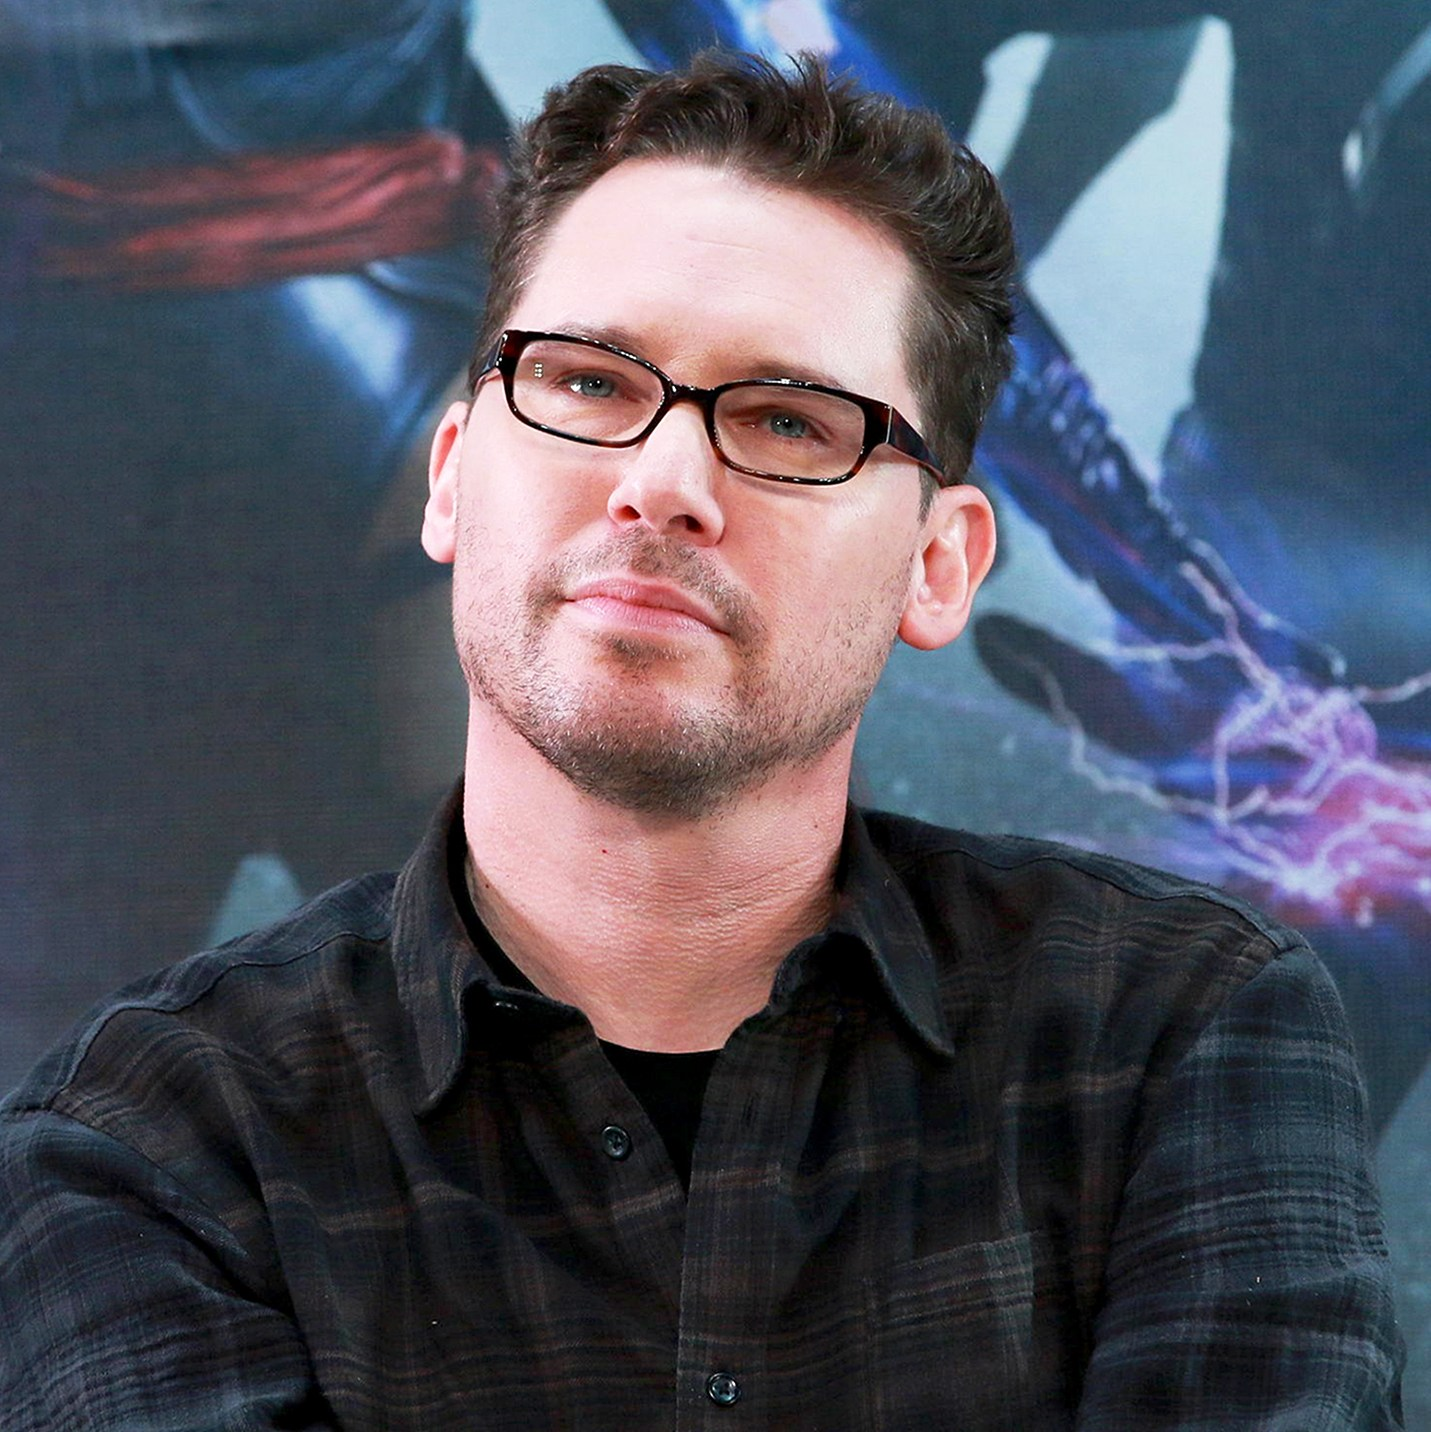 """Bryan Singer attends Tsinghua campus visit for new movie """"X-Men: Apocalypse"""" on May 18, 2016 in Beijing, China."""